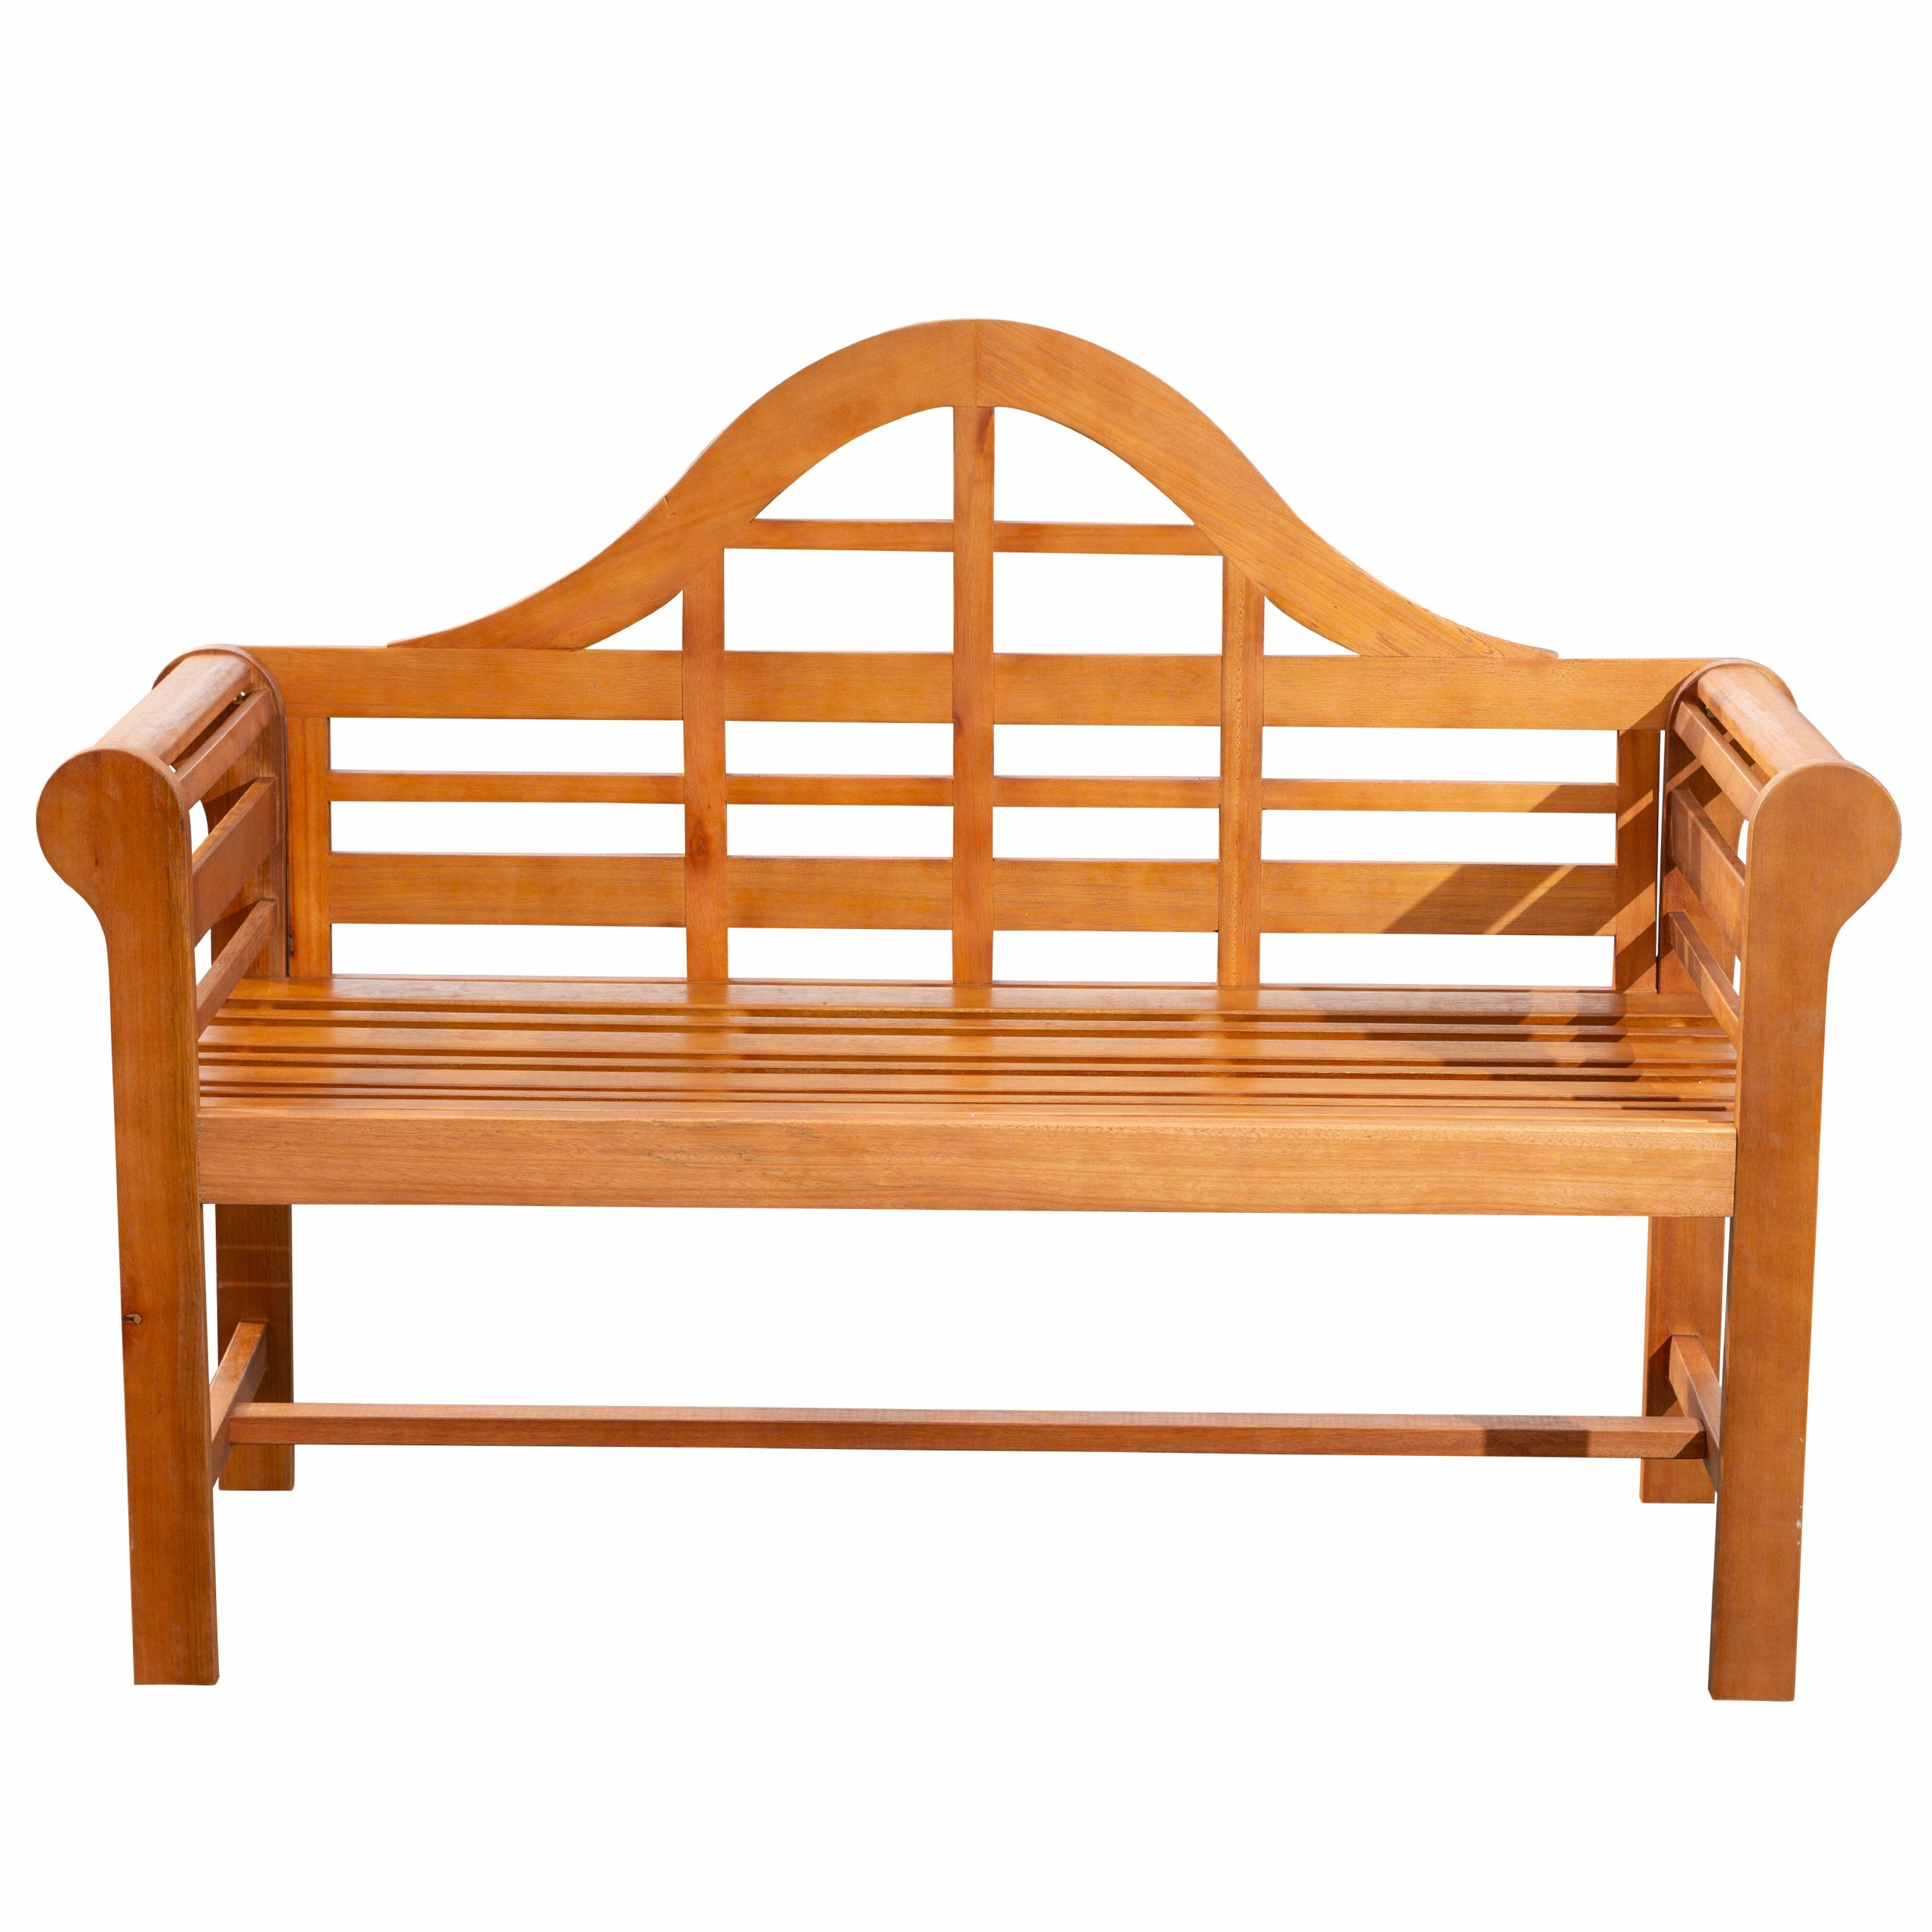 Preferred Alfon Wood Garden Benches Pertaining To Michalski Wooden Garden Bench (View 3 of 30)